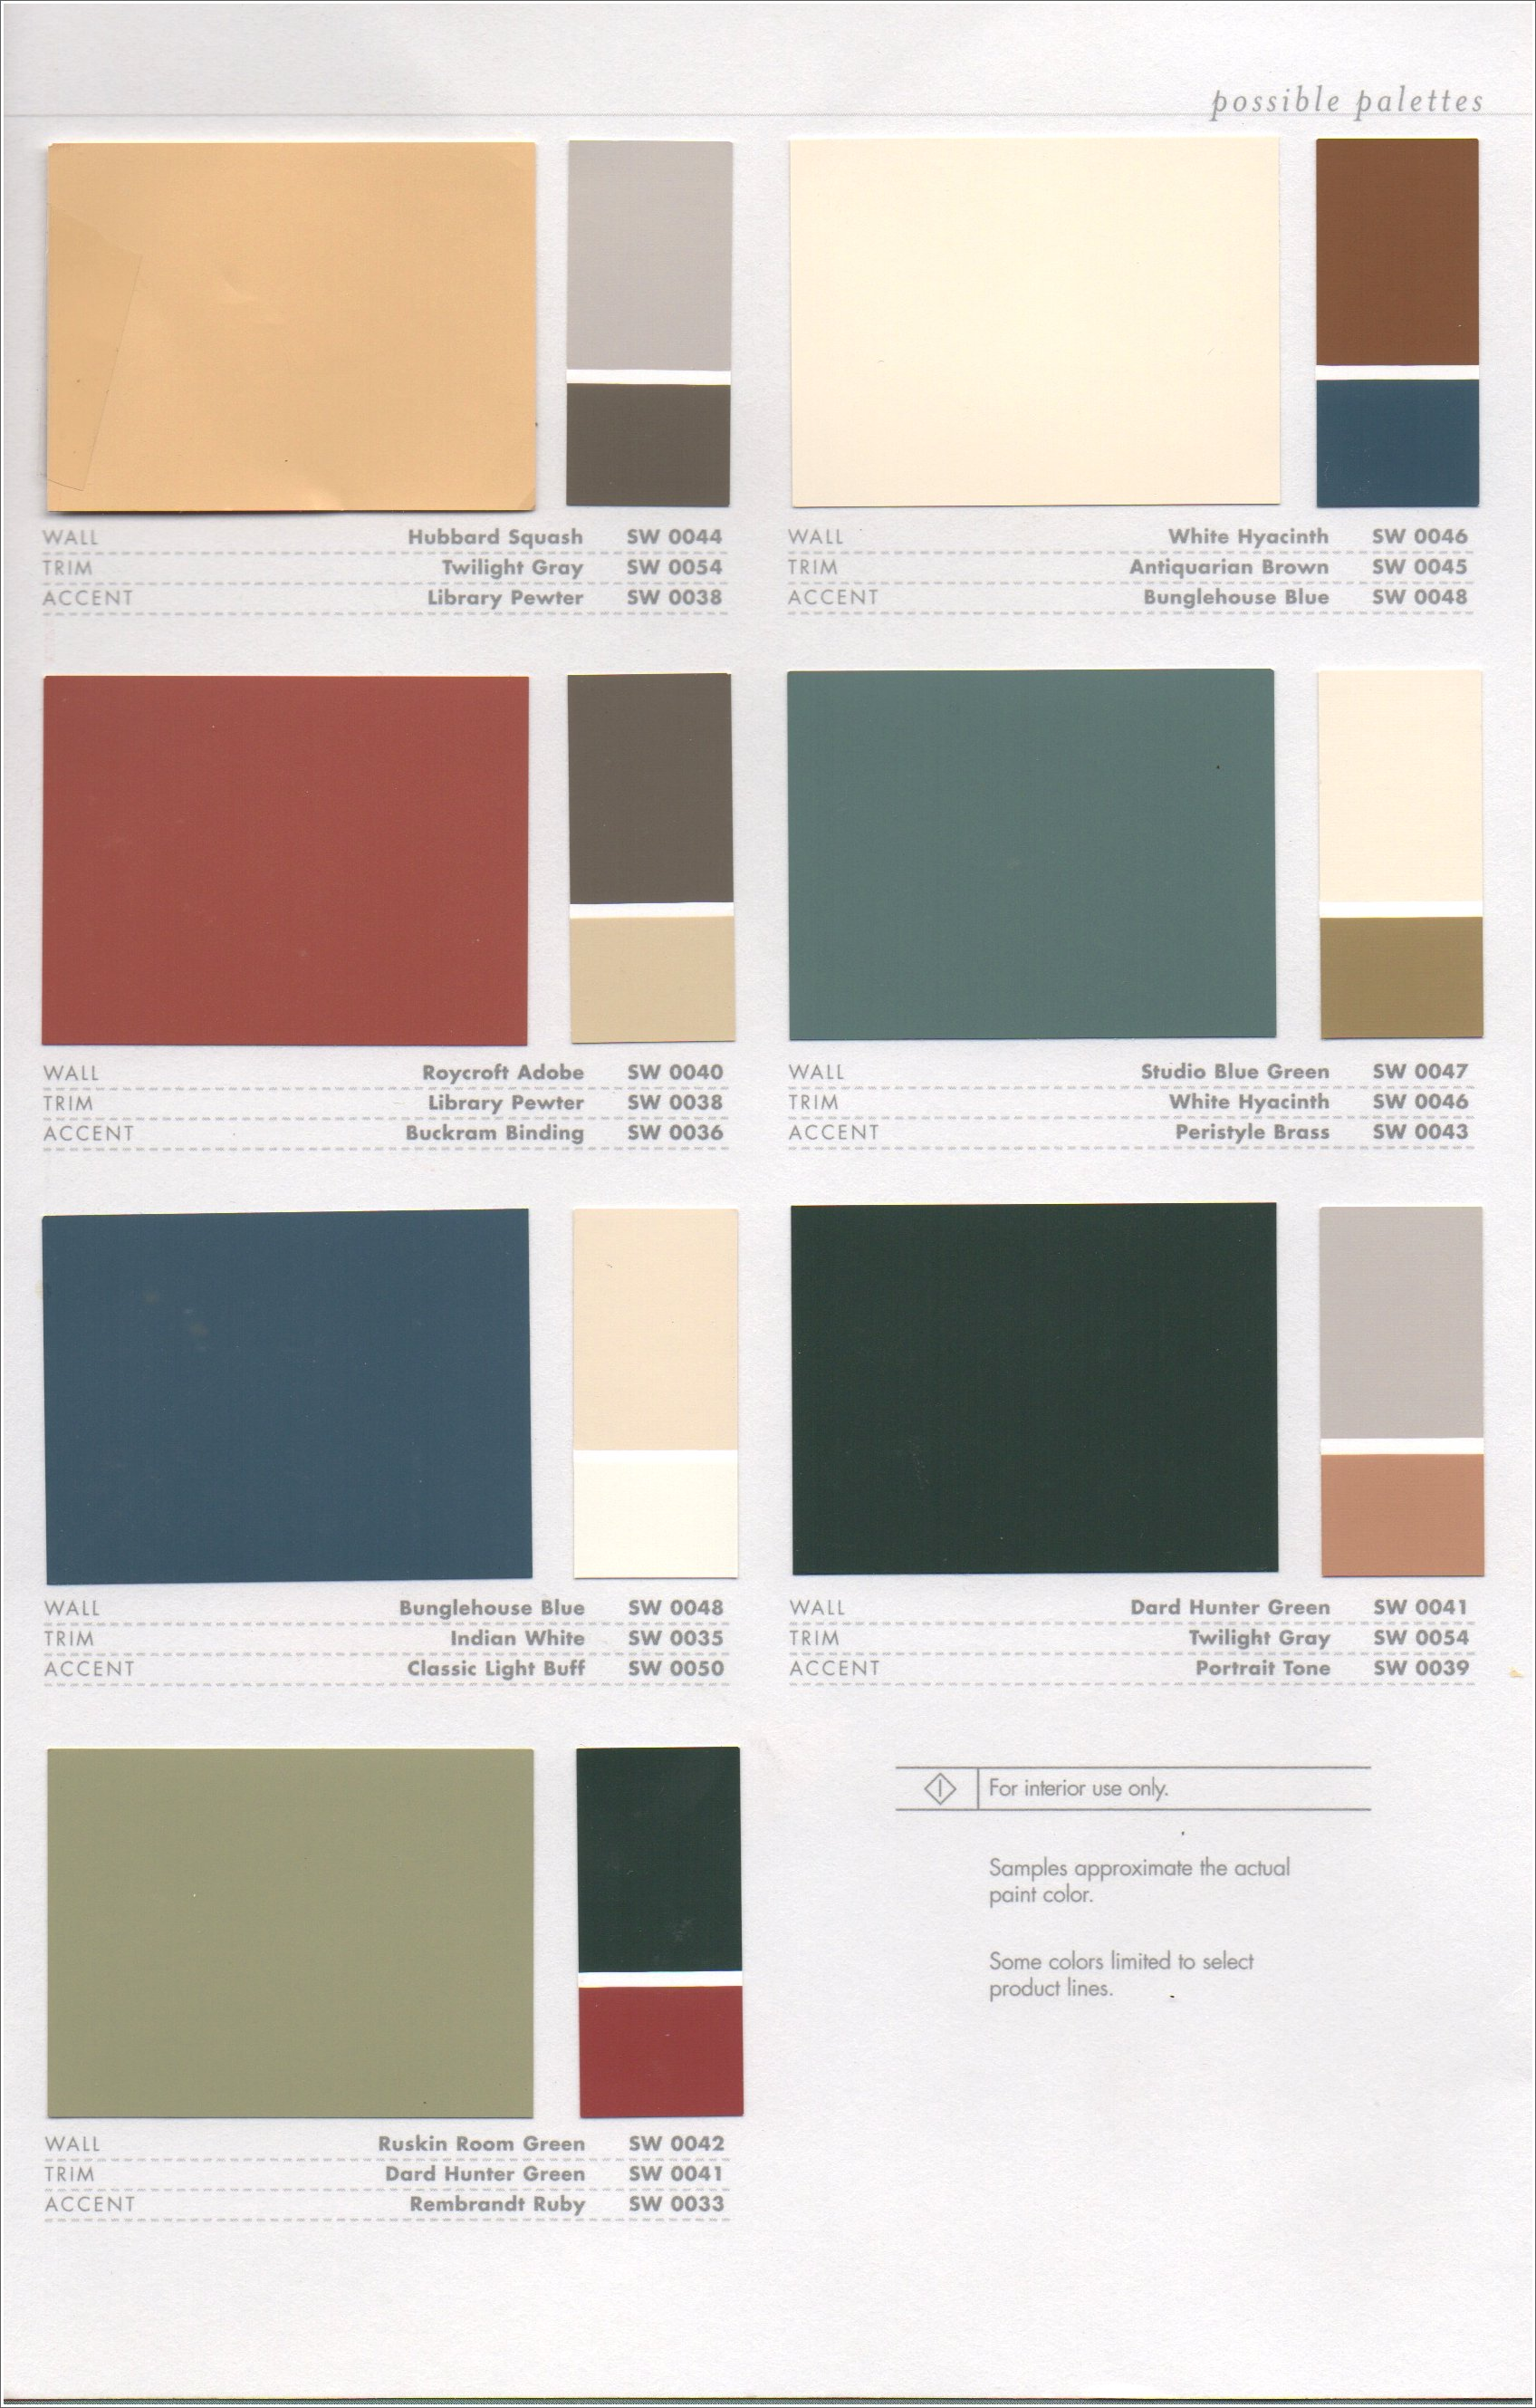 colonial paint colors submited images